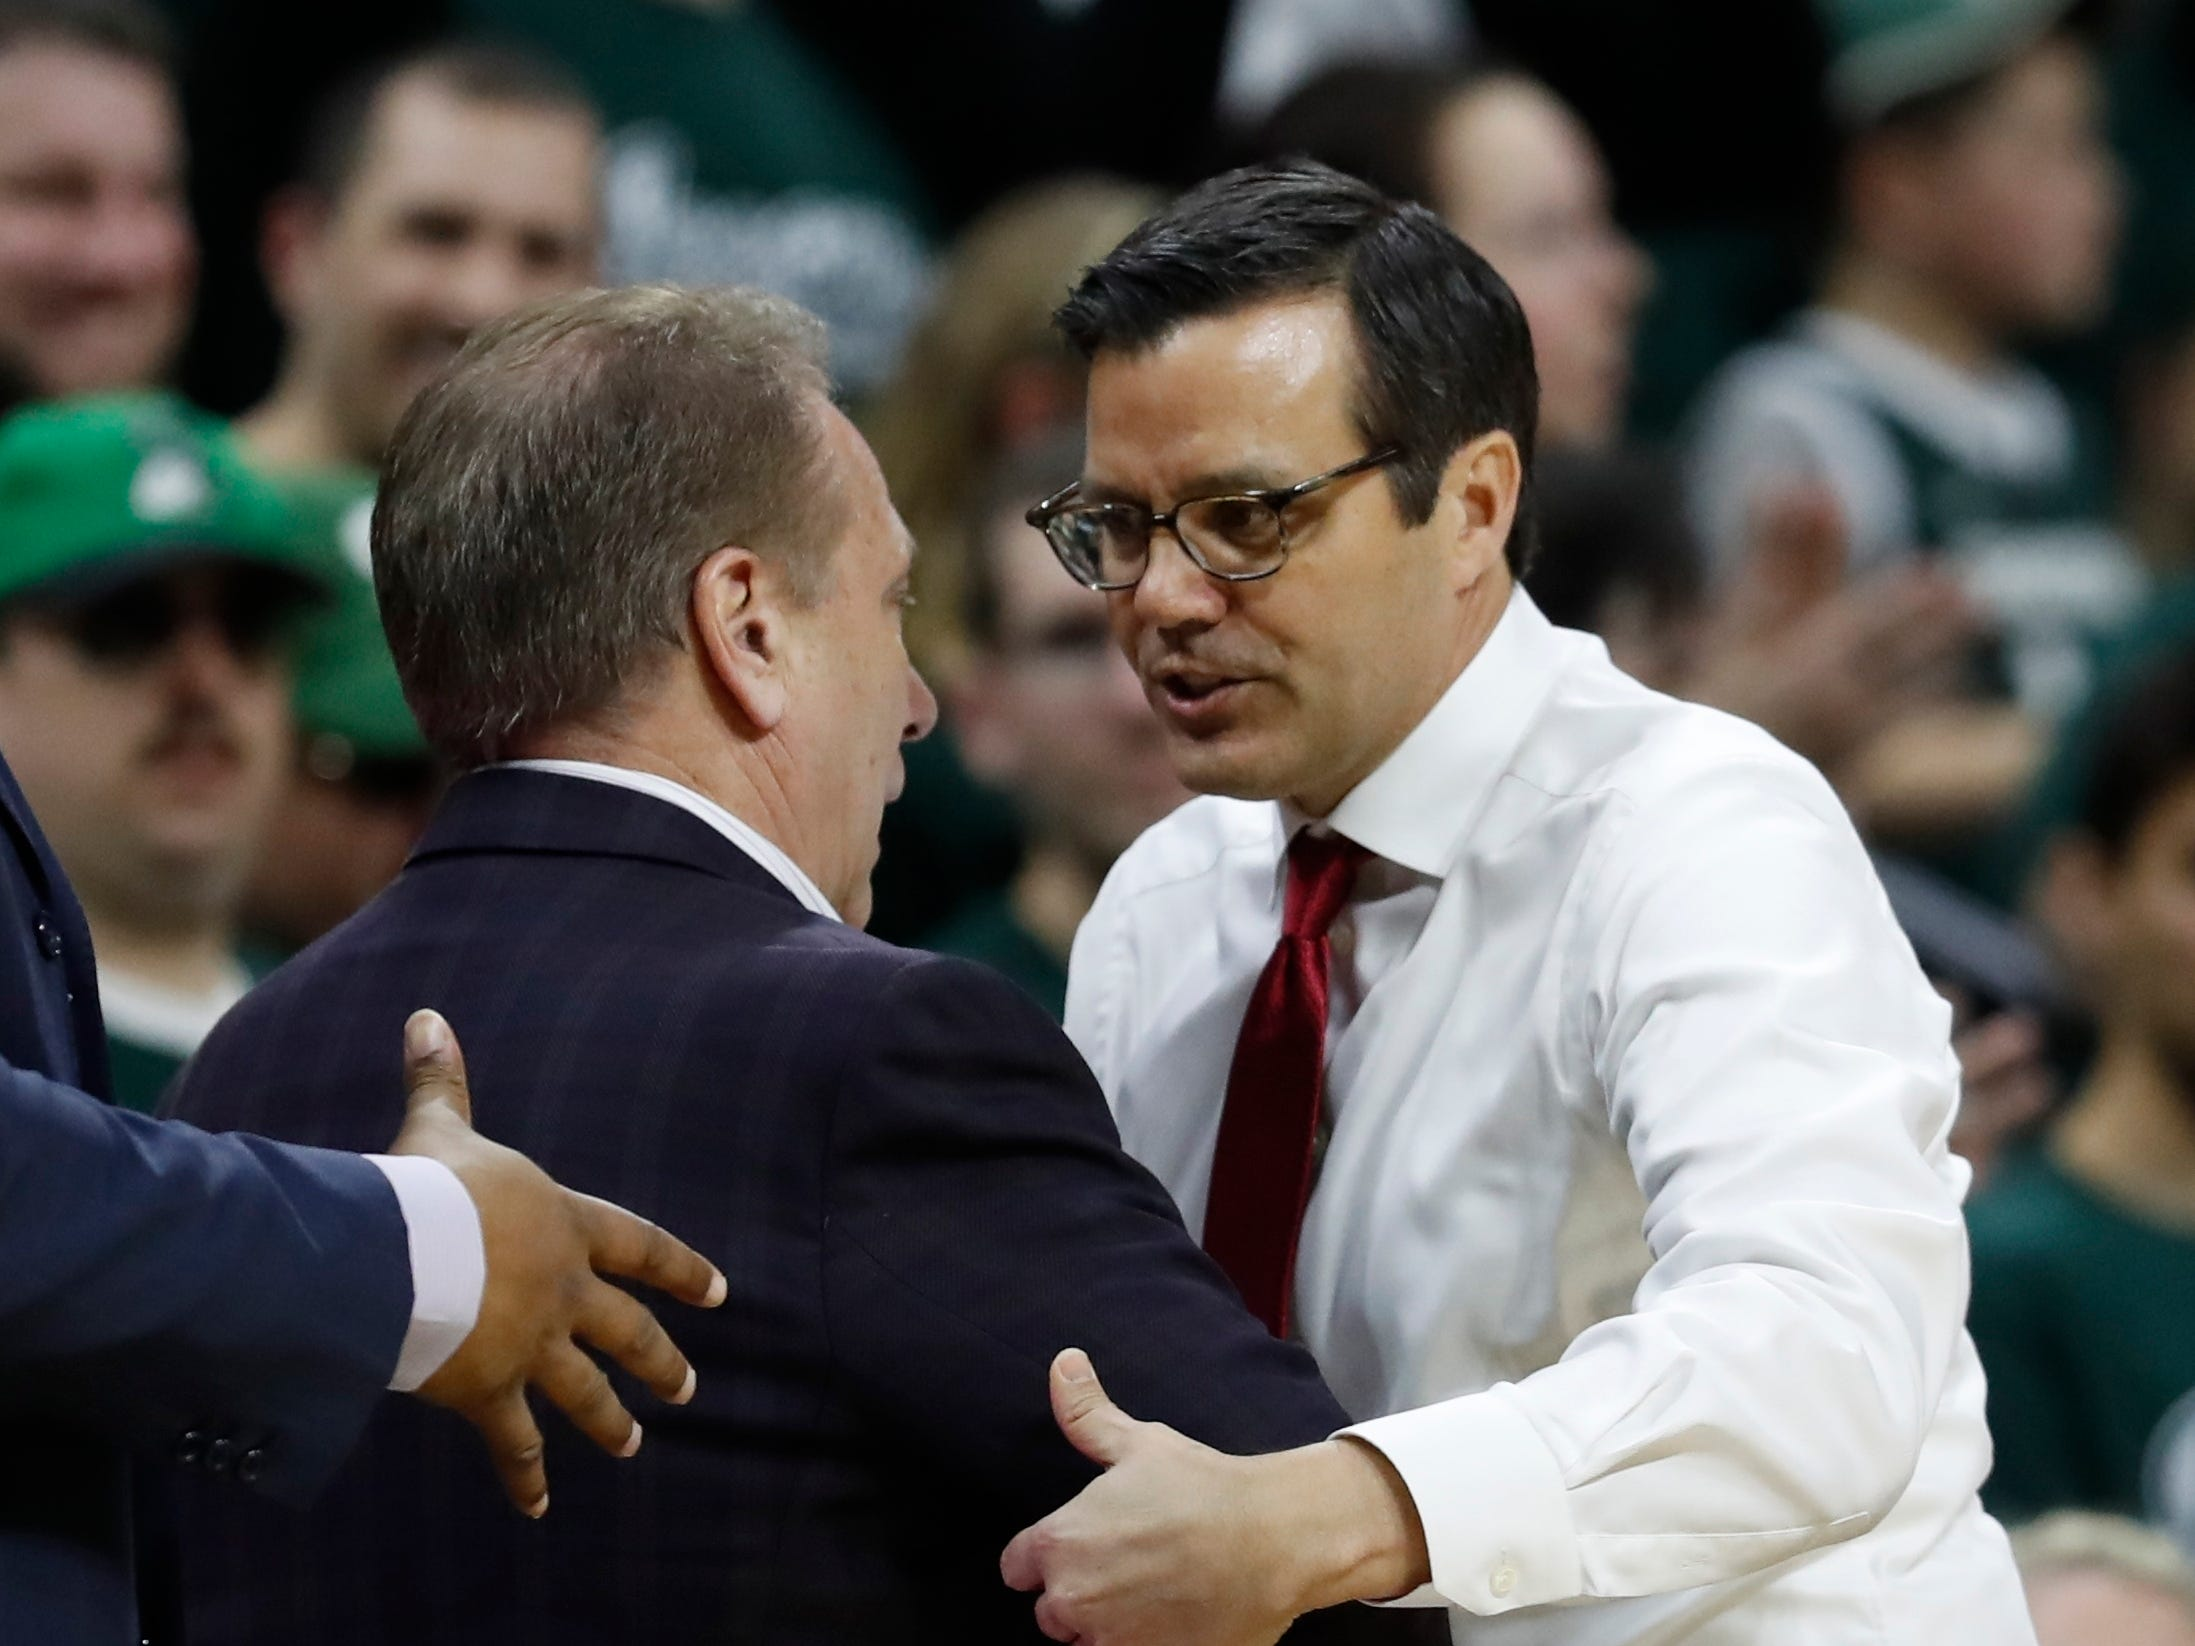 Michigan State head coach Tom Izzo, left, greets Nebraska head coach Tim Miles after an NCAA college basketball game, Tuesday, March 5, 2019, in East Lansing, Mich.